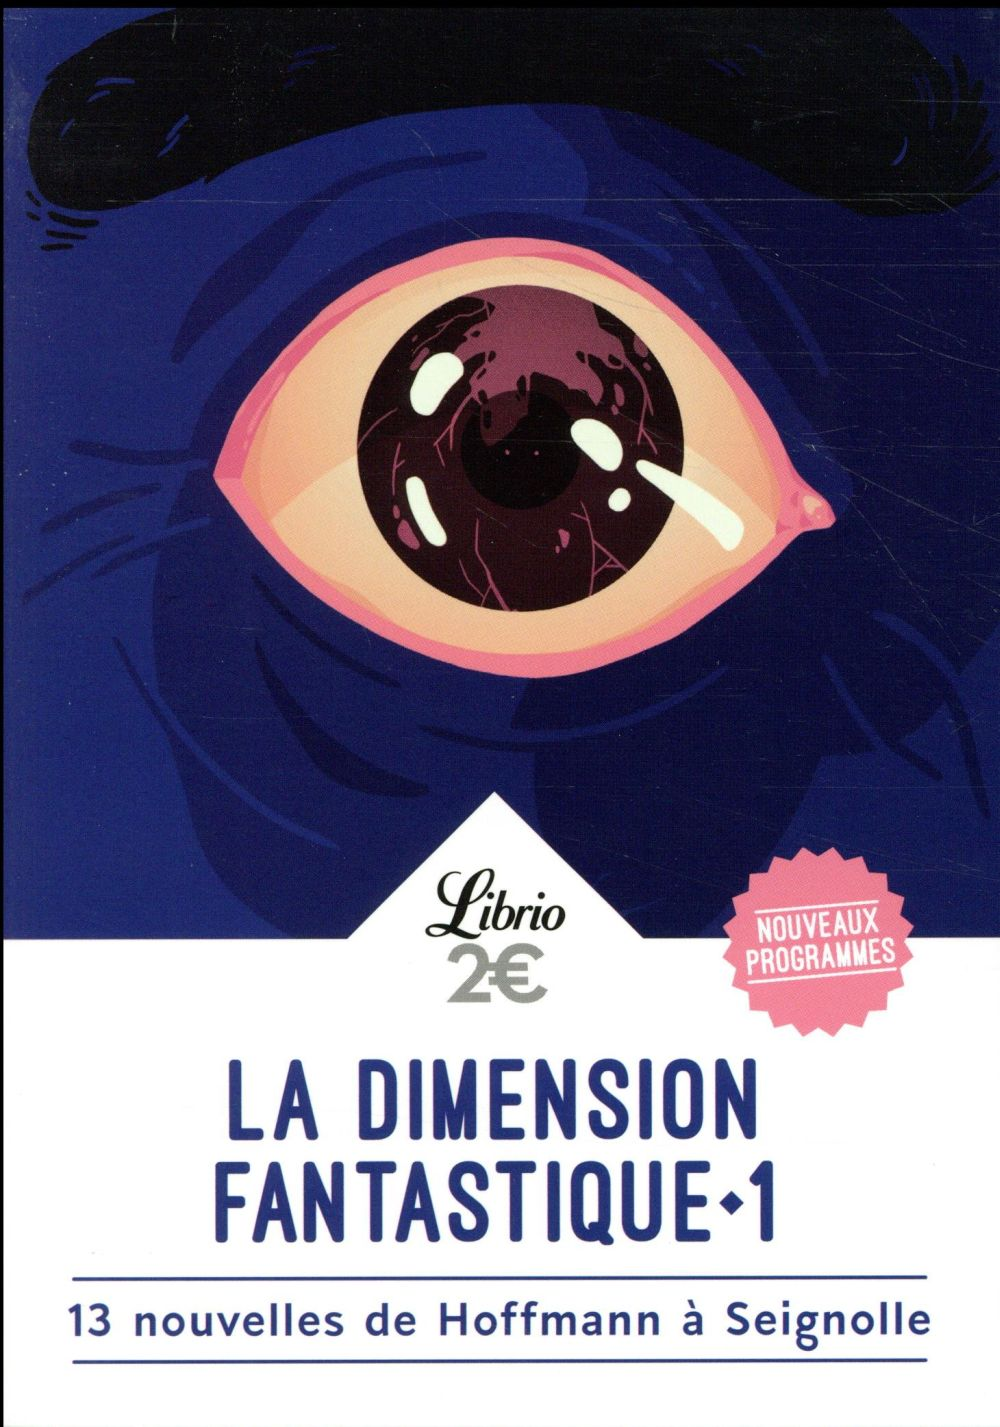 LA DIMENSION FANTASTIQUE